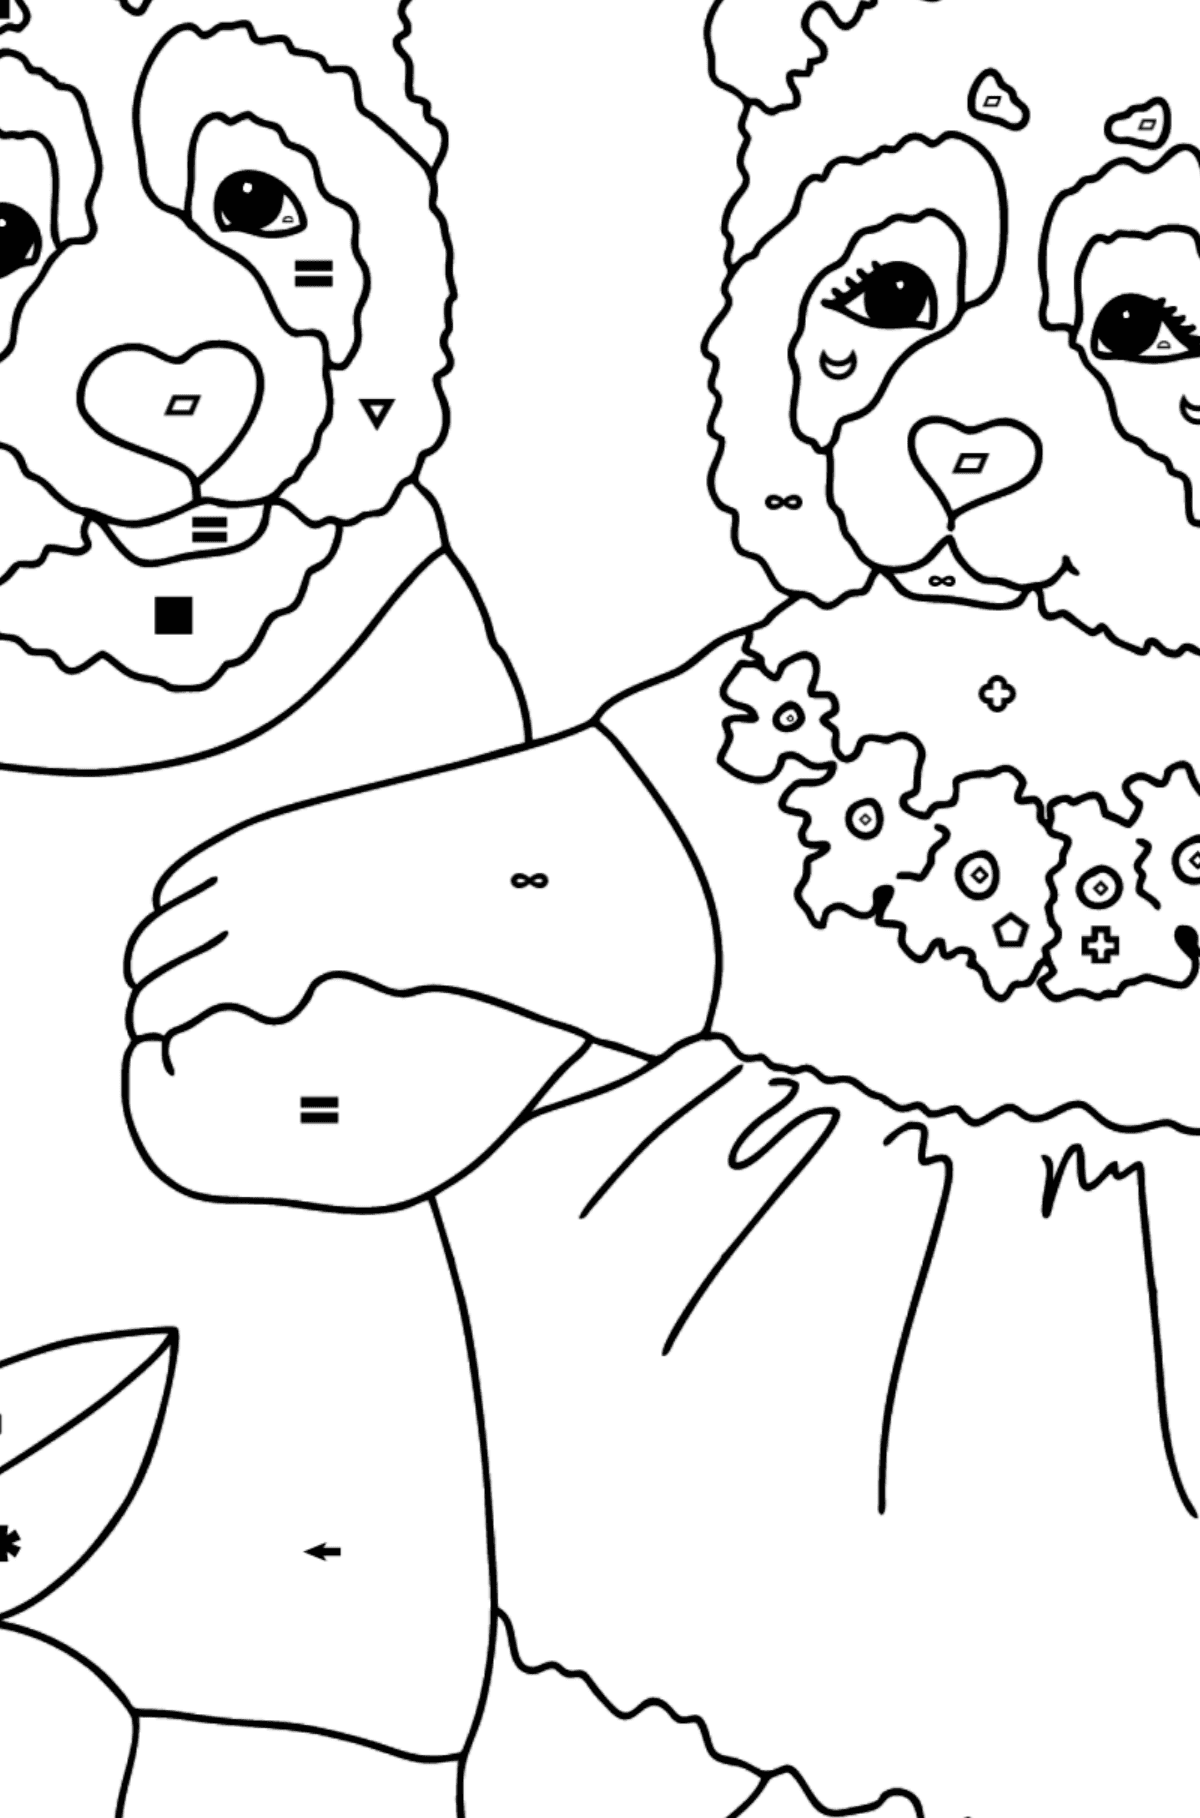 Coloring Page - Pandas are Having a Rest - Coloring by Symbols and Geometric Shapes for Kids